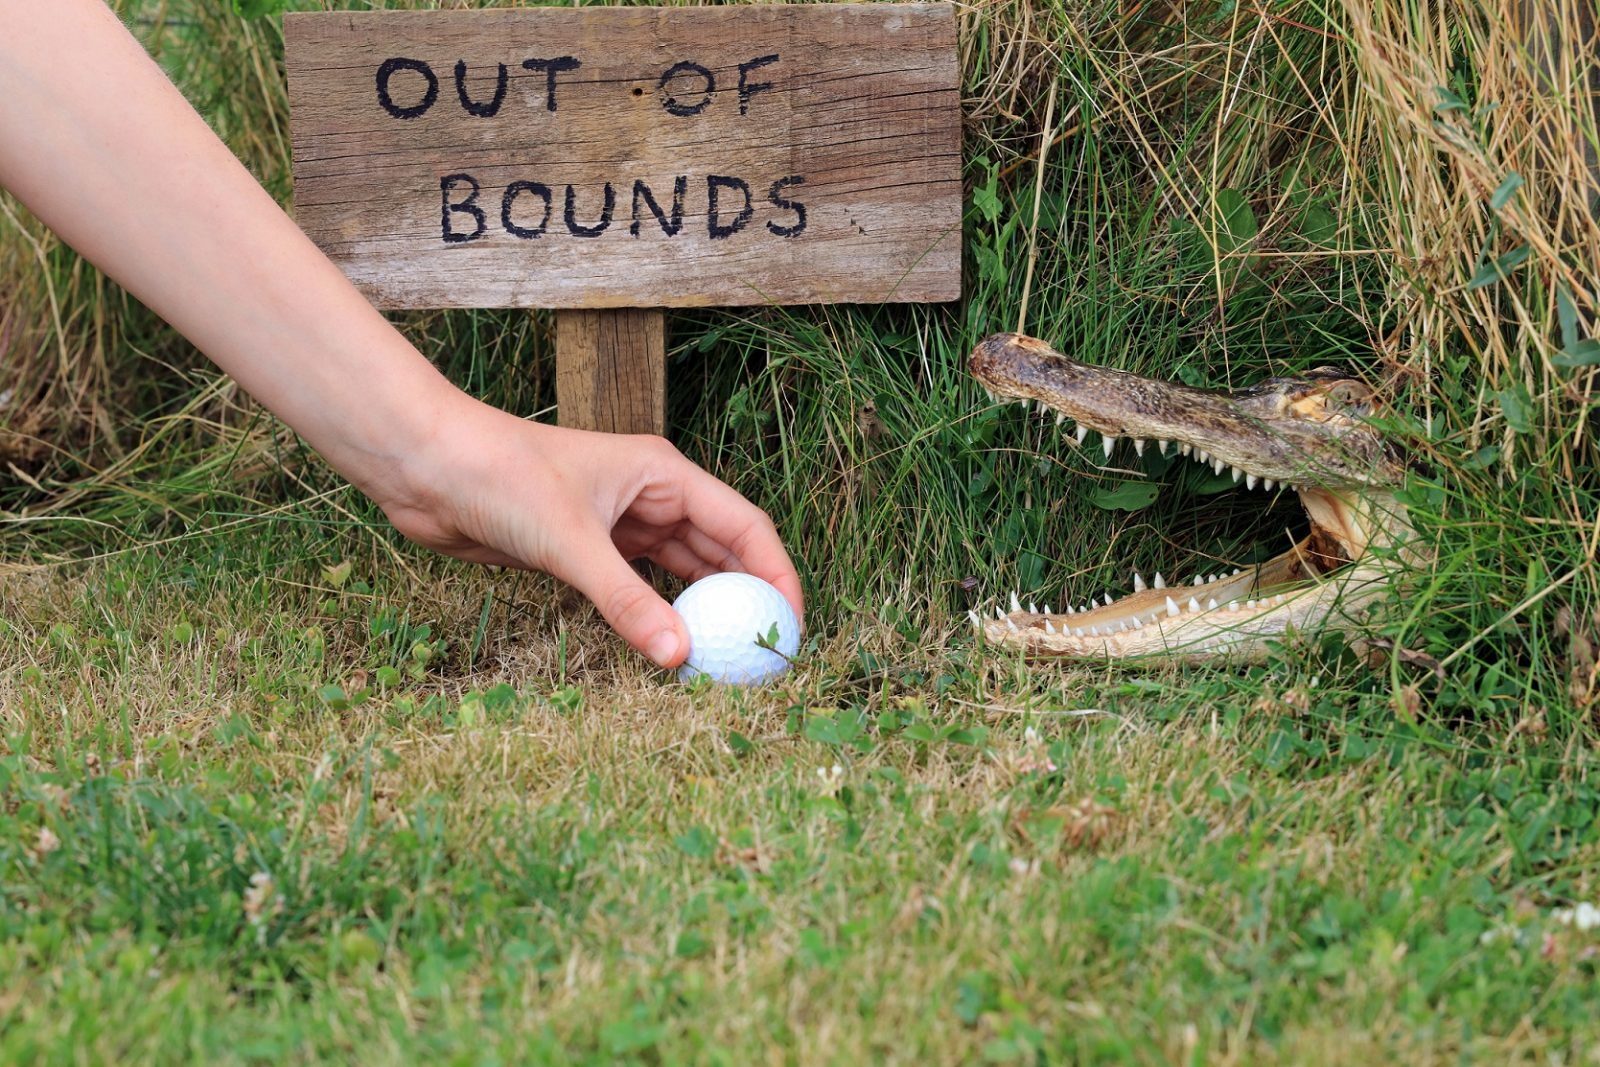 """A hand reaches for a golf ball nestled in the grass near a sign reading """"Out of Bounds"""" and an alligator with its mouth open."""